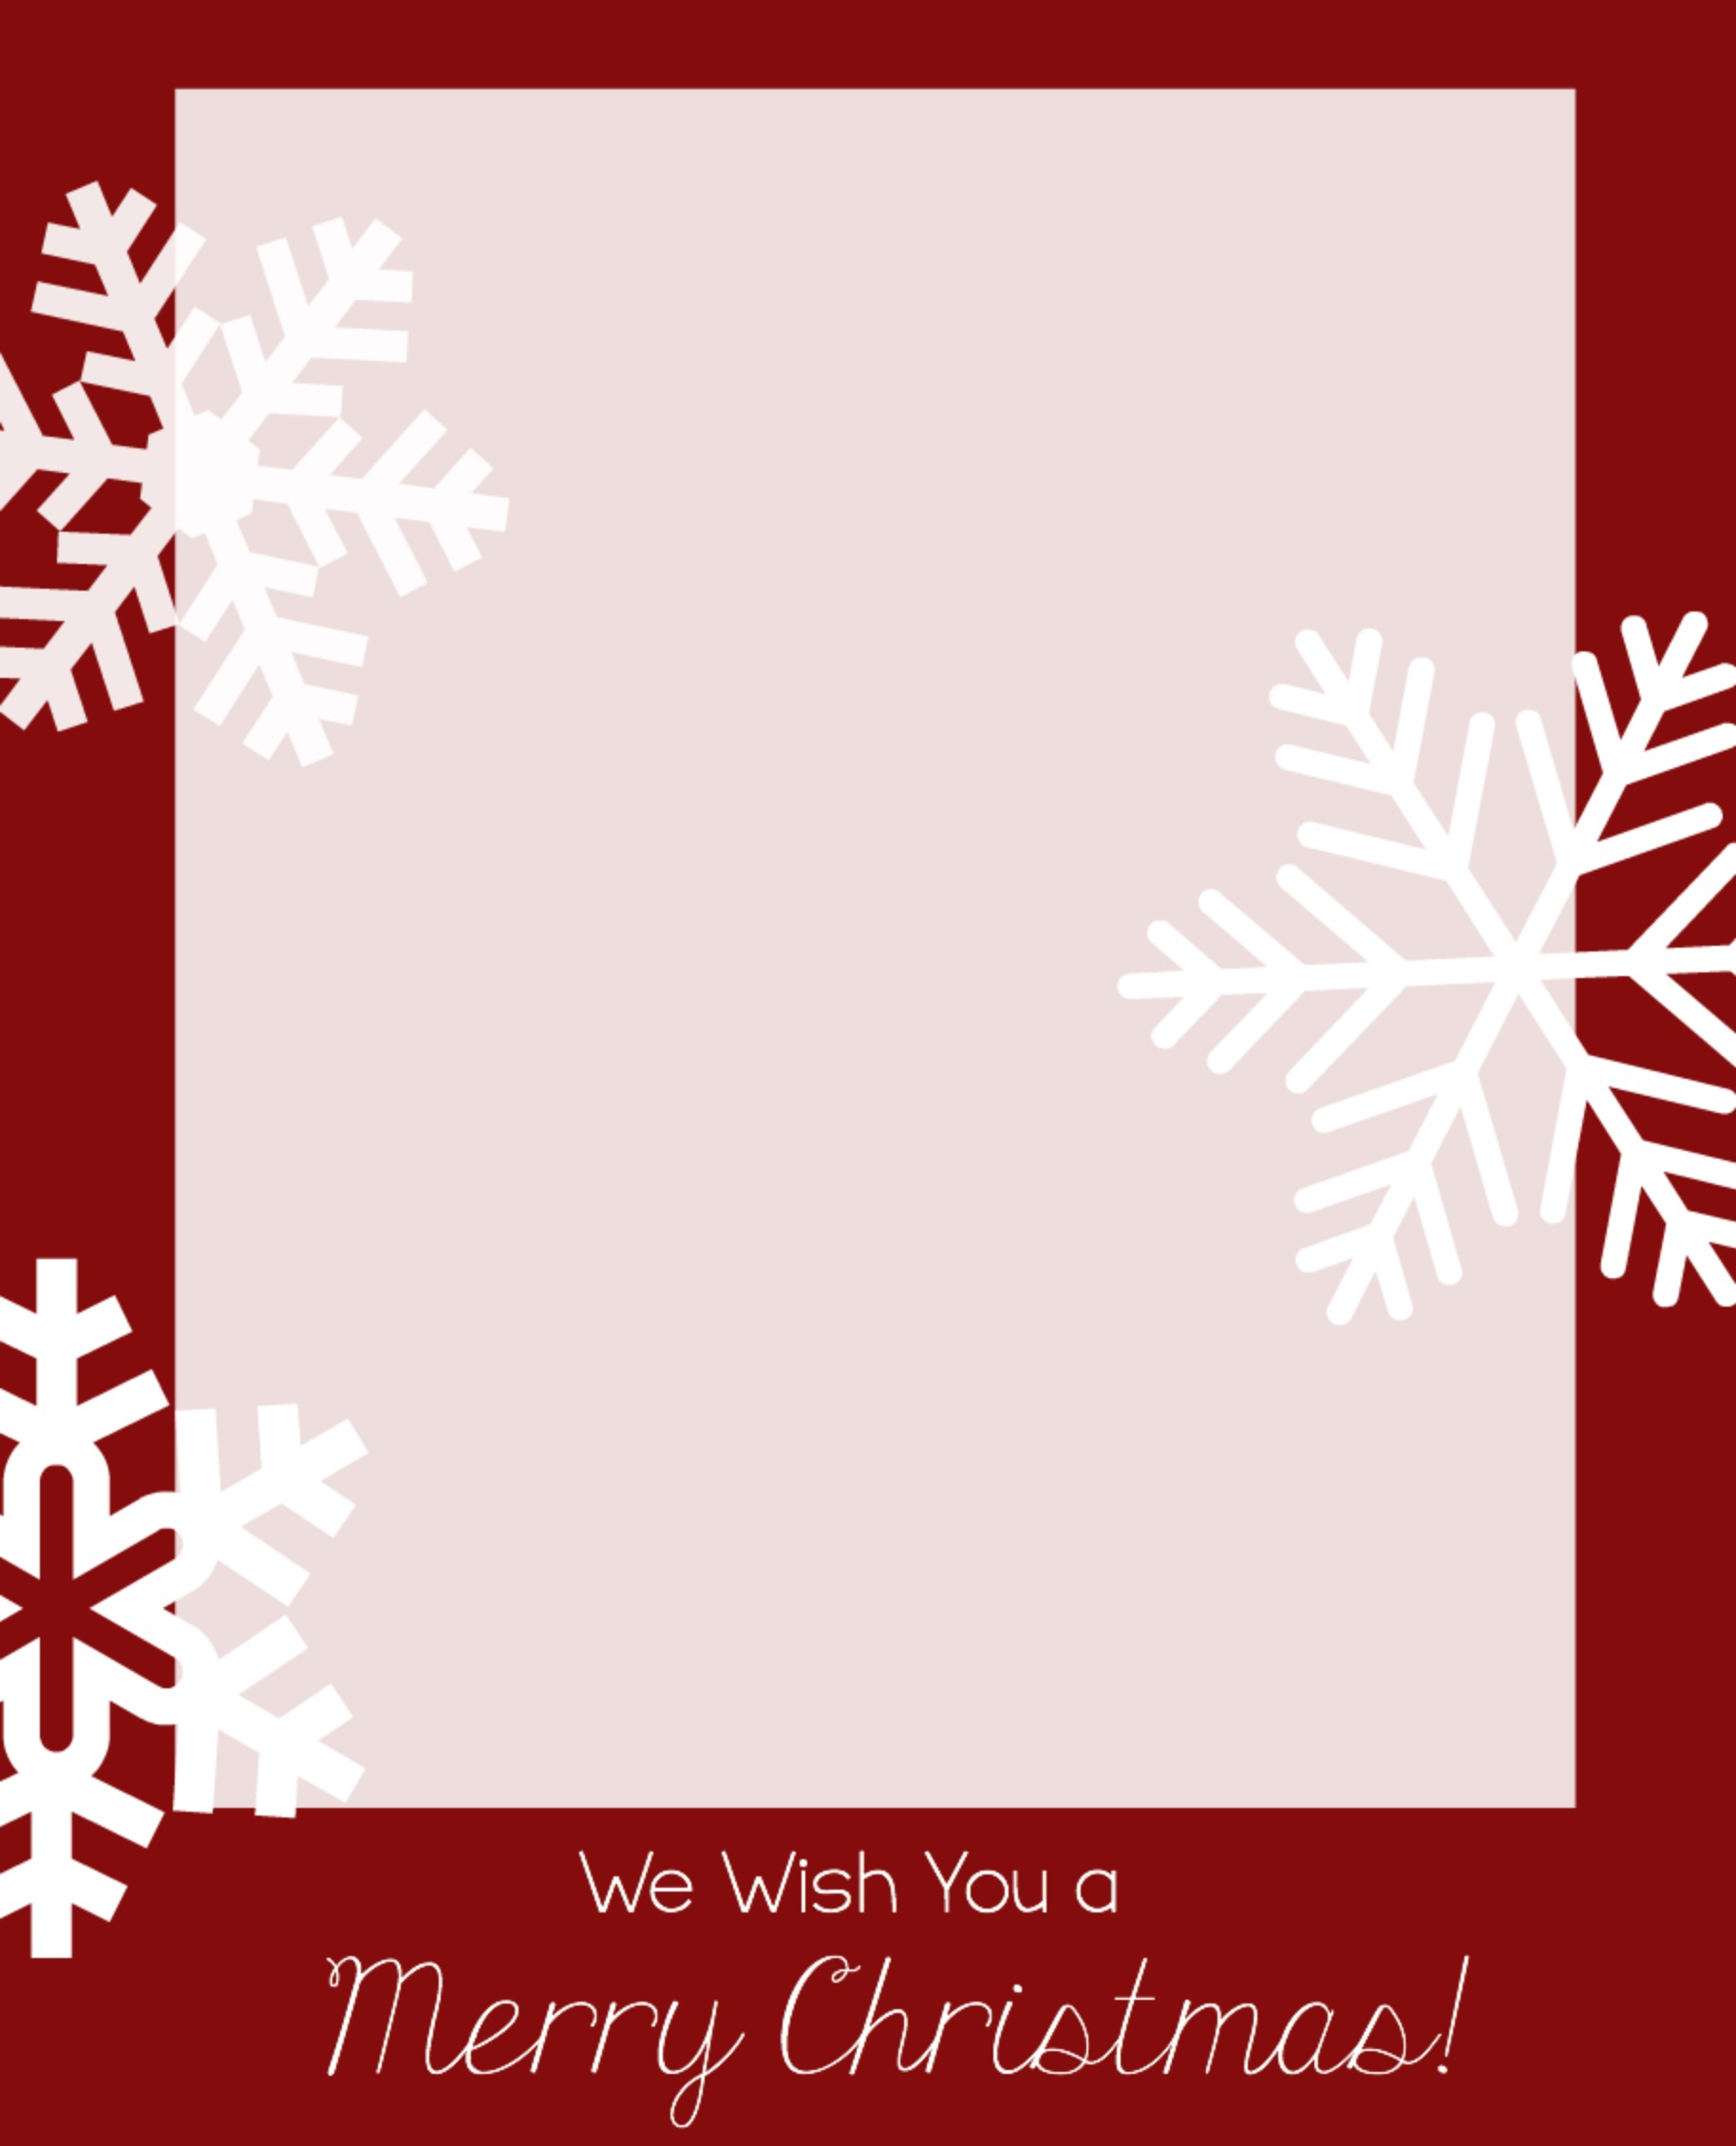 Christmas card photo template idealstalist christmas card photo template cheaphphosting Image collections